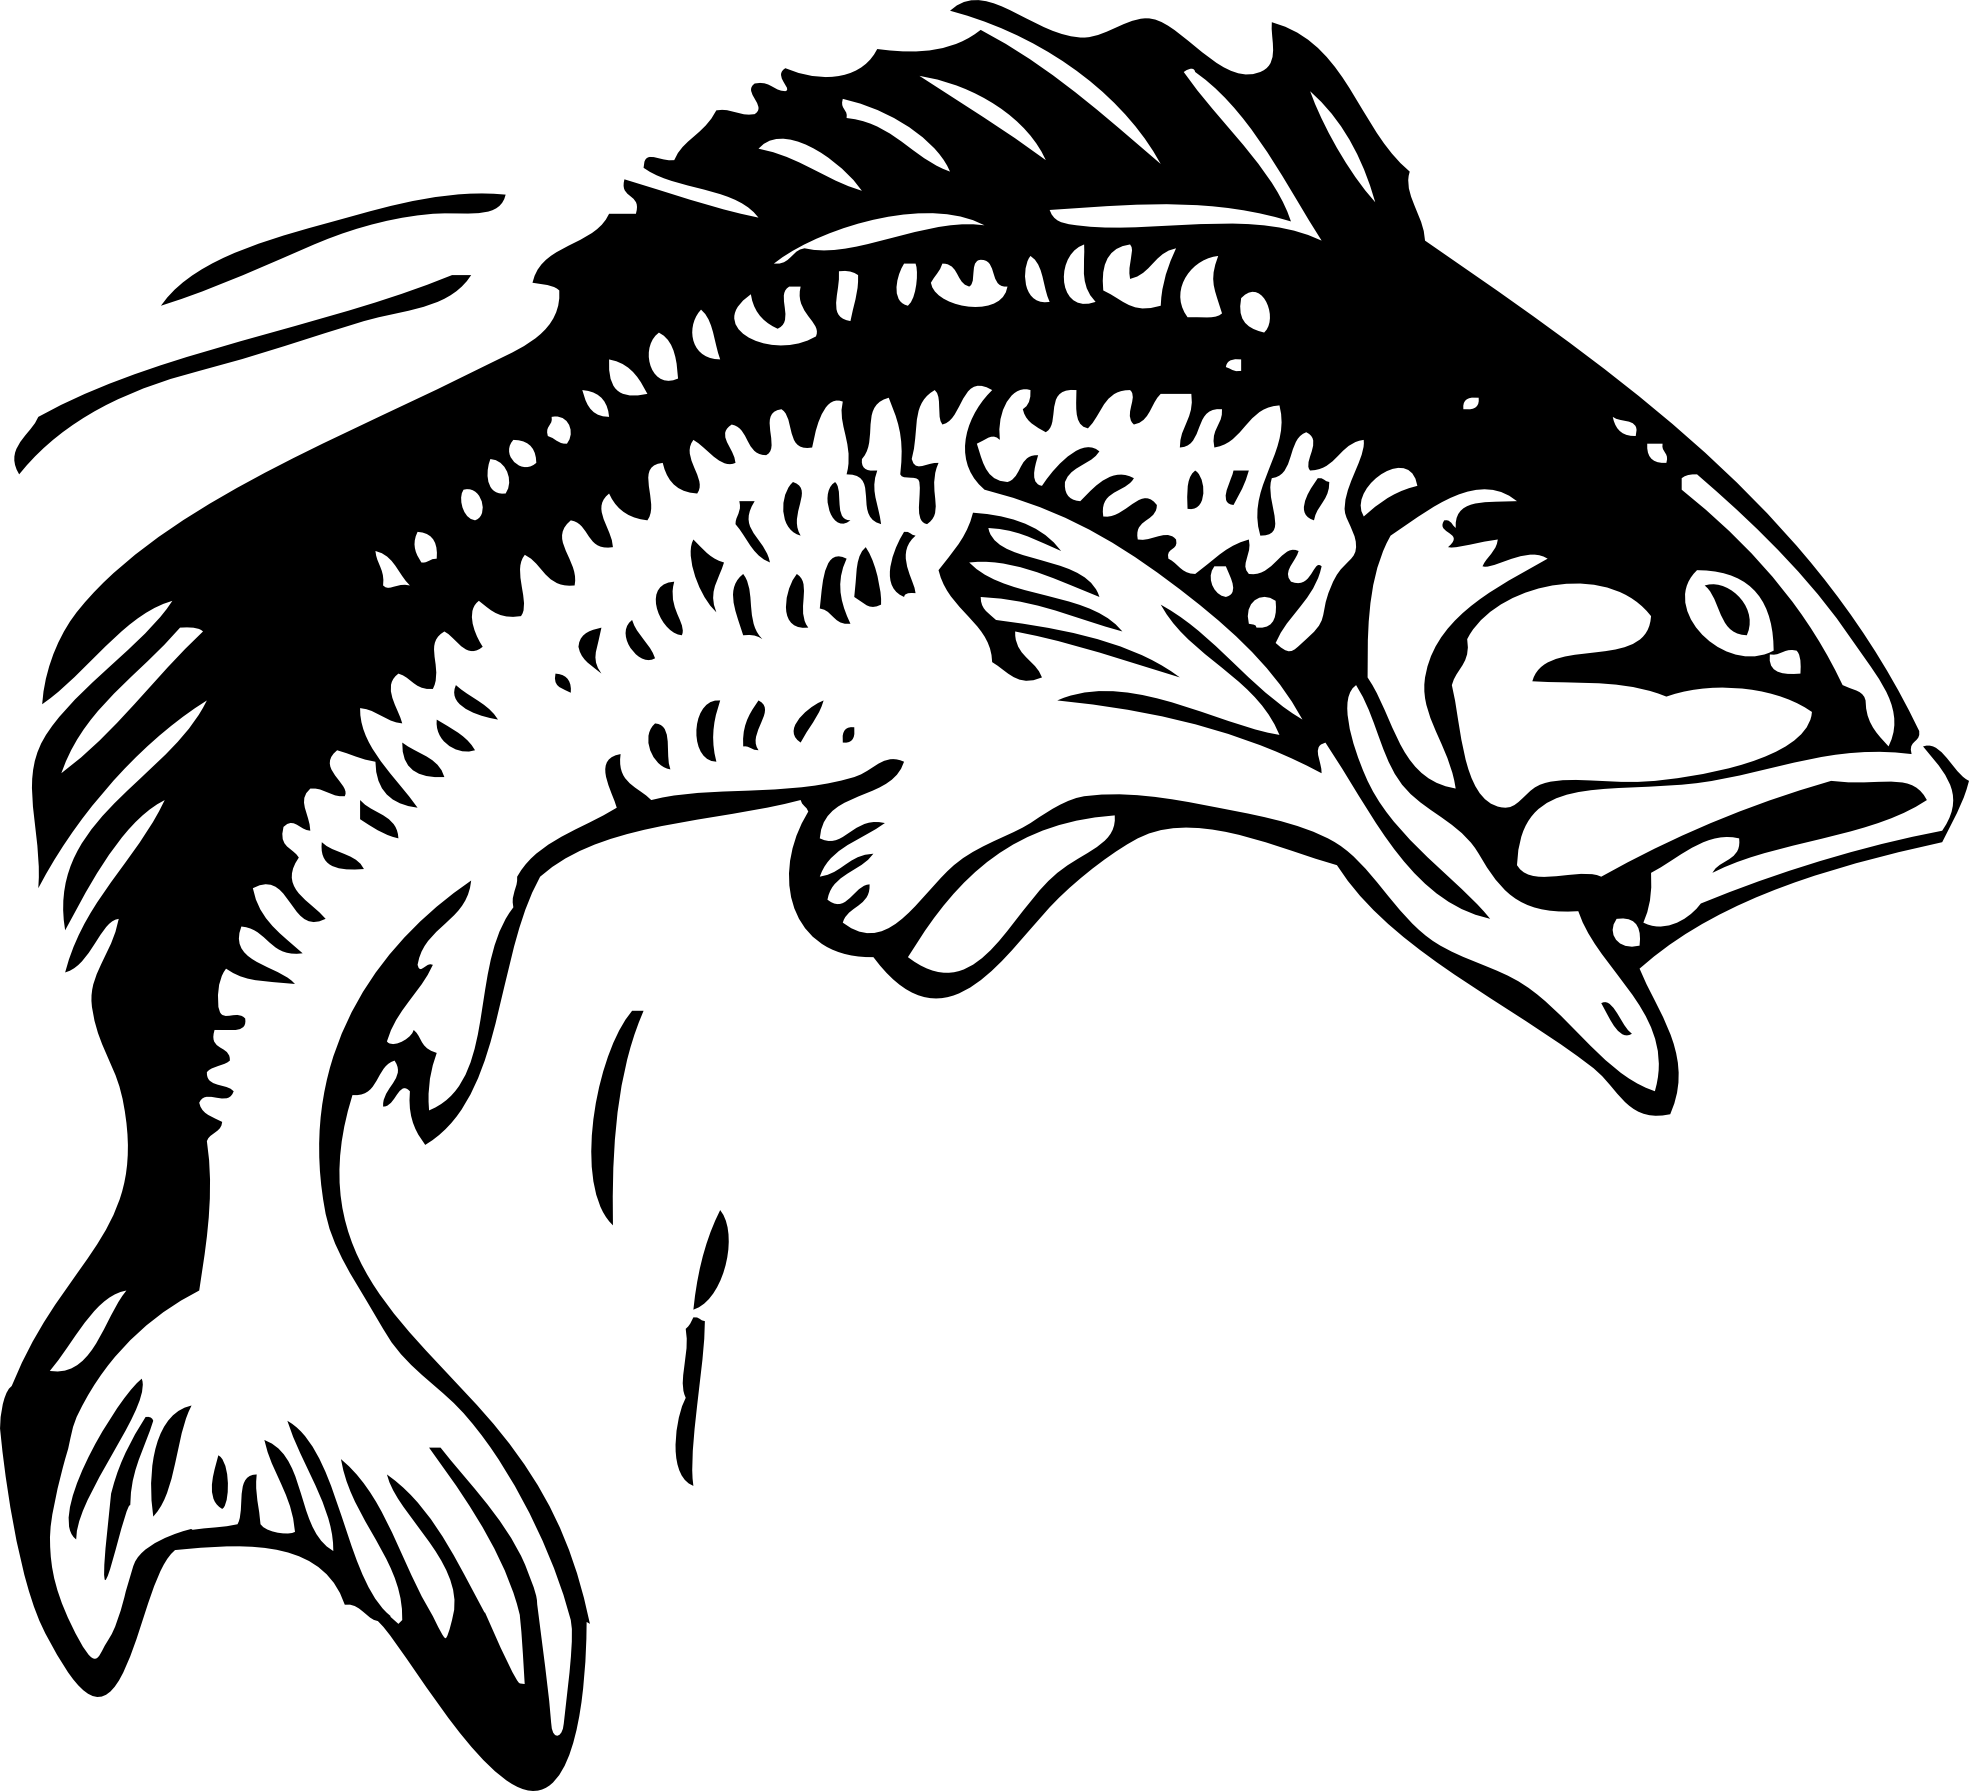 Fish fillet clipart jpg black and white 30+ Cool Dried Fish Clipart Black And jpg black and white